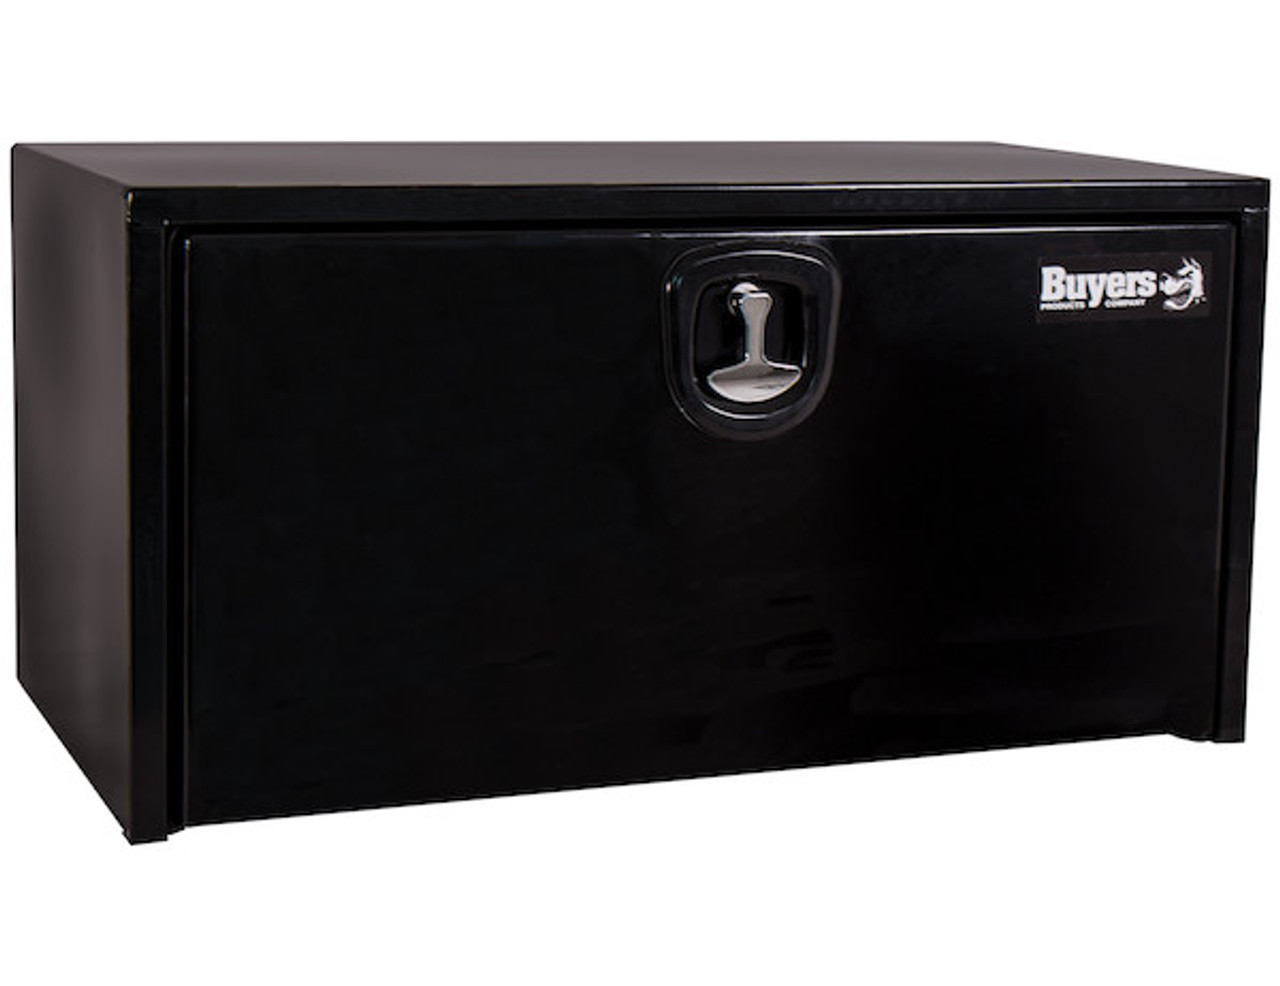 """1734303 BUYERS PRODUCTS BLACK STEEL UNDERBODY TRUCK TOOLBOX WITH 3-POINT LATCH 24""""Hx24""""Dx30""""W"""